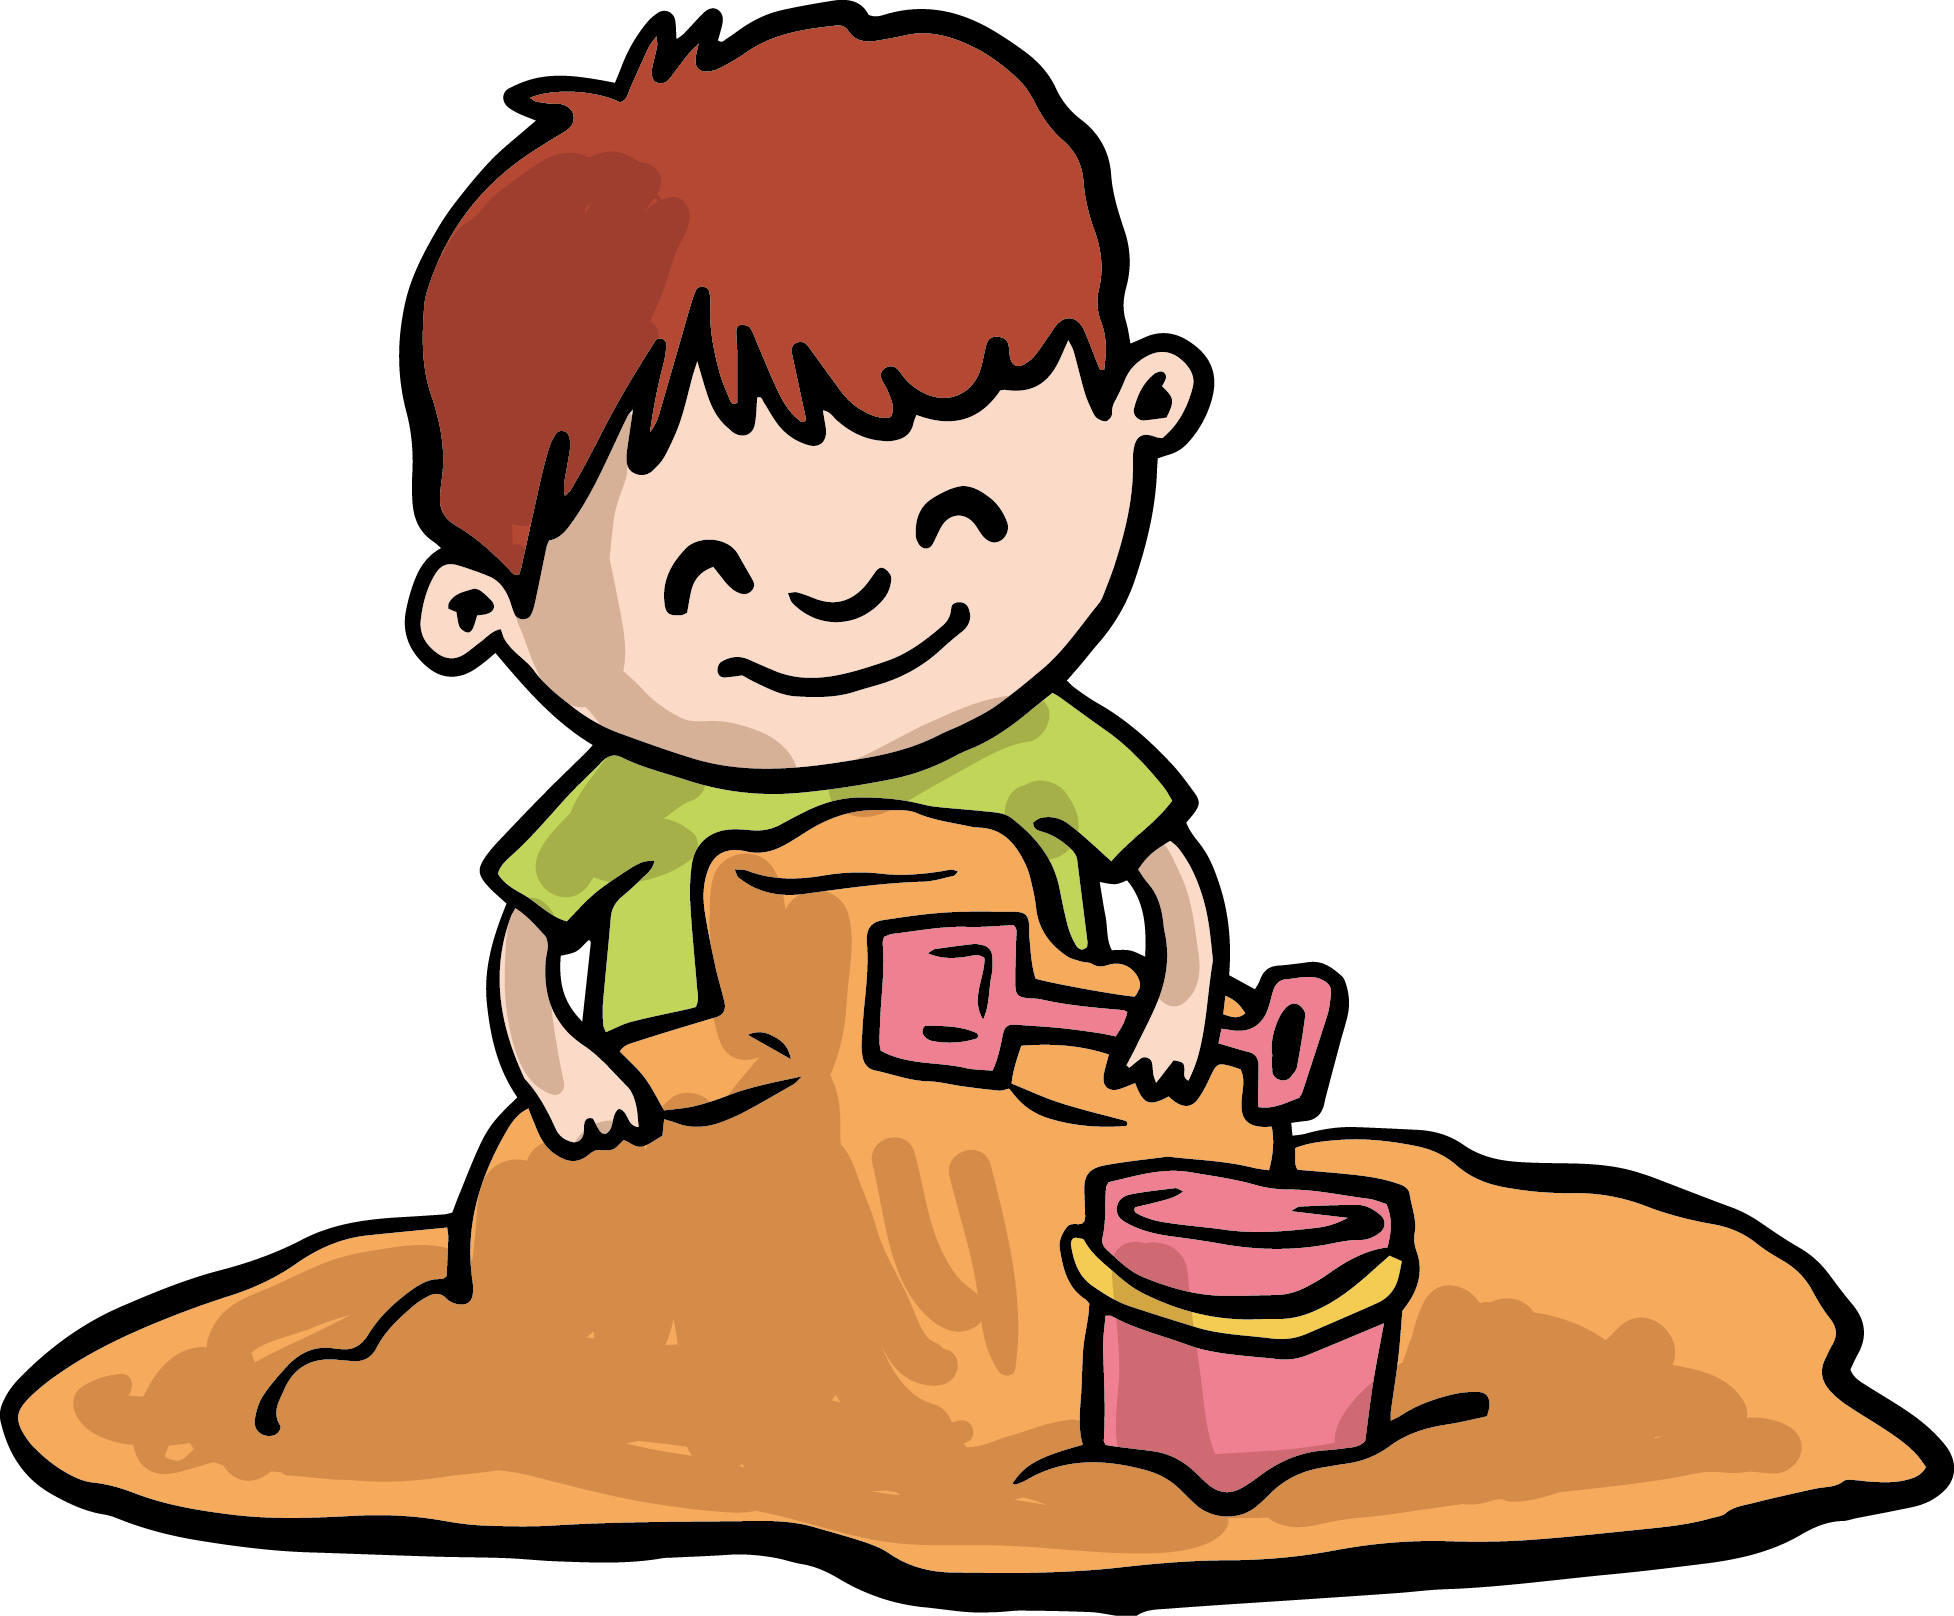 Sand play clip art. Gum clipart child